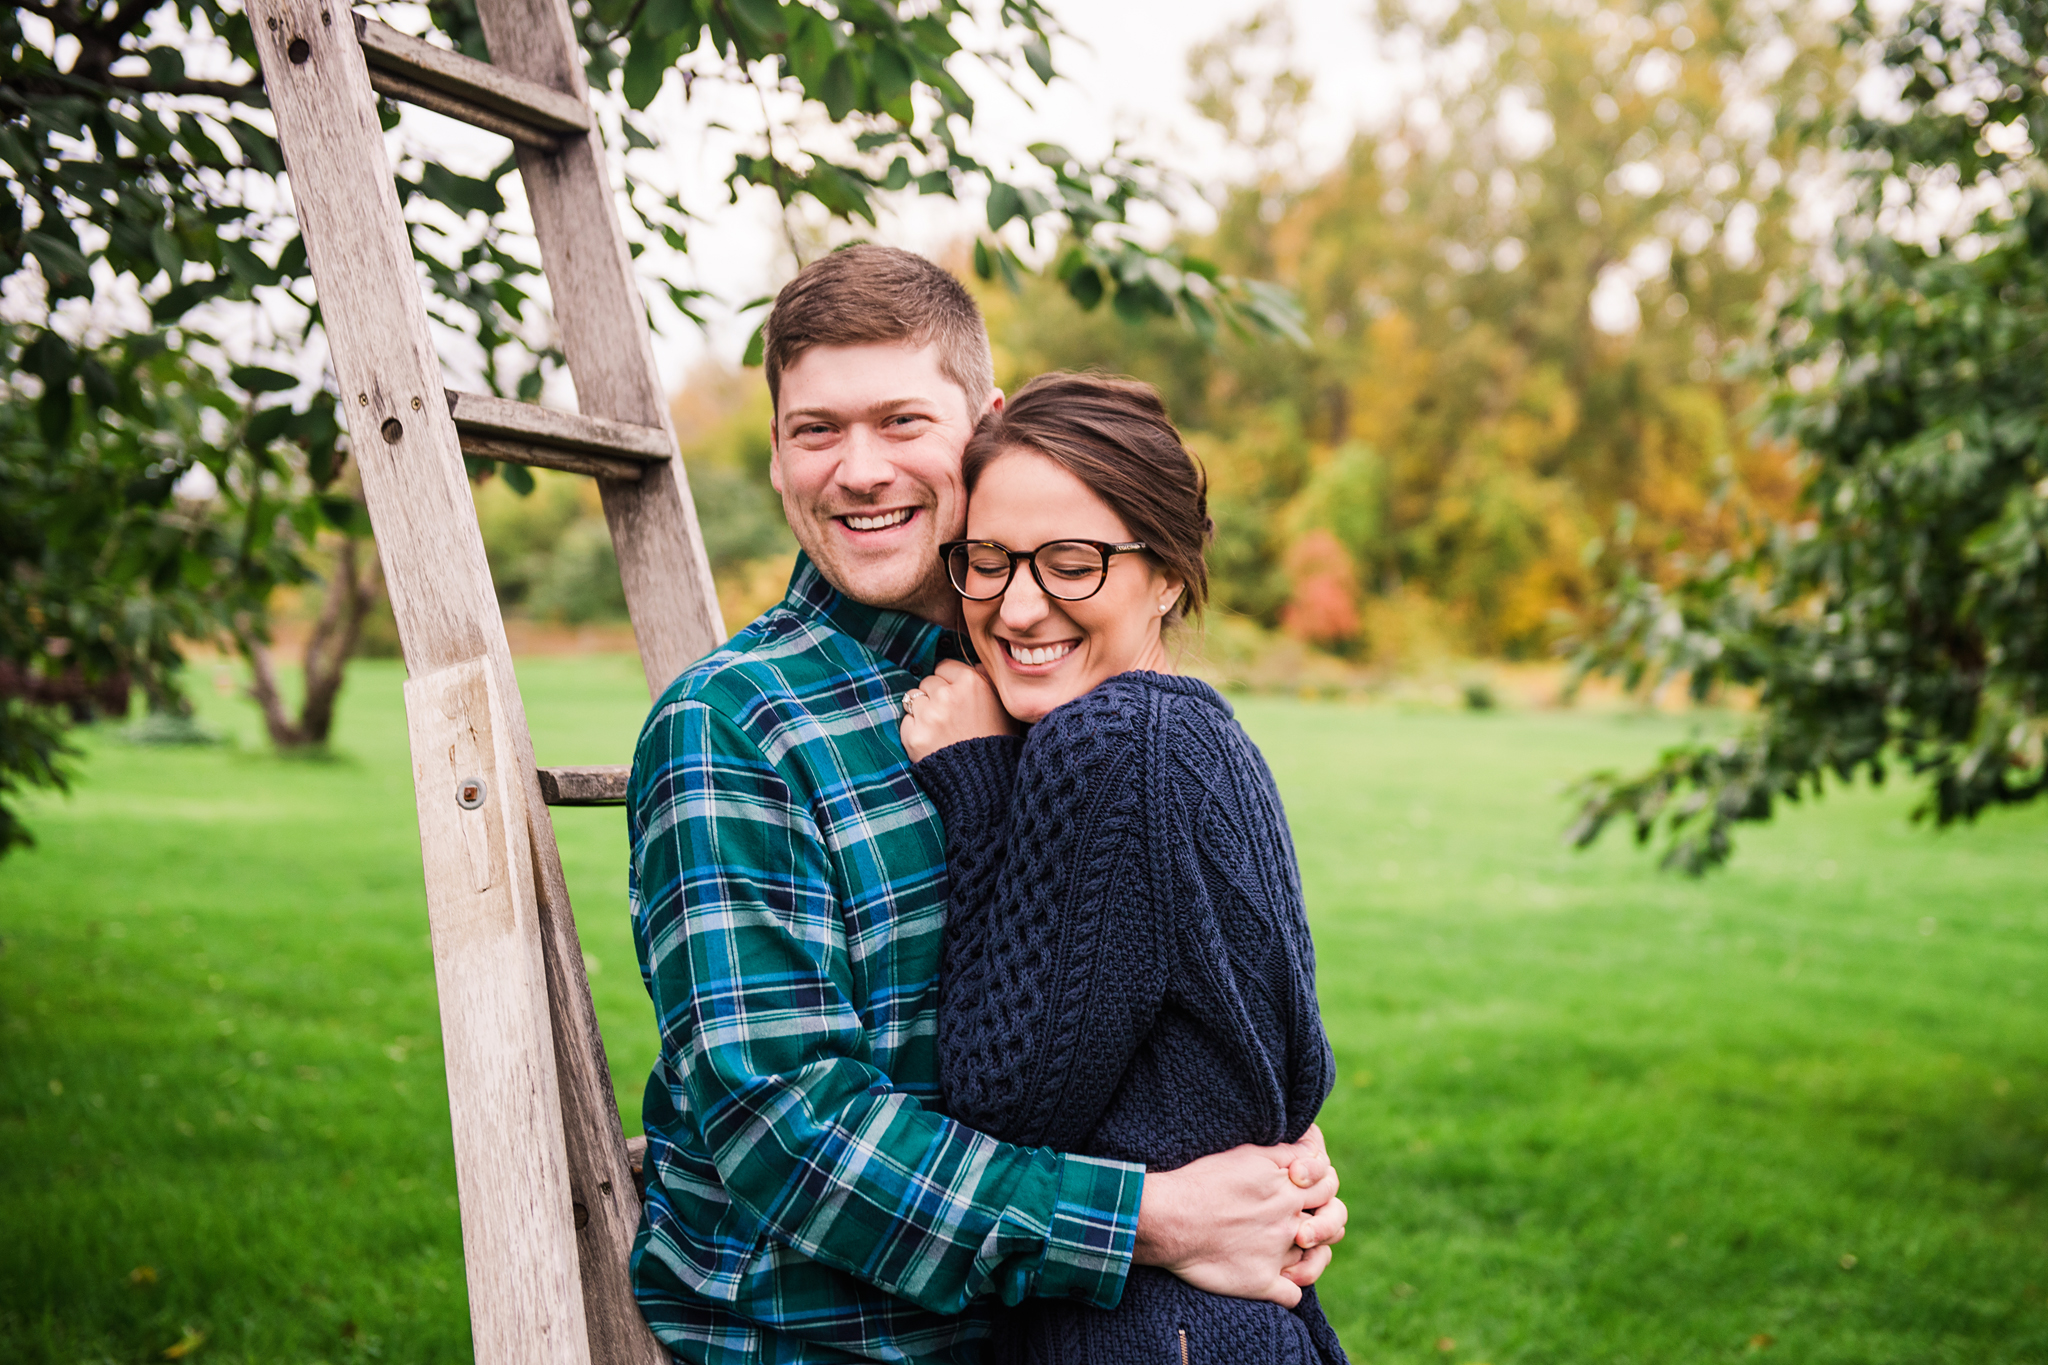 Hurd_Orchards_Rochester_Engagement_Session_JILL_STUDIO_Rochester_NY_Photographer_DSC_1893.jpg